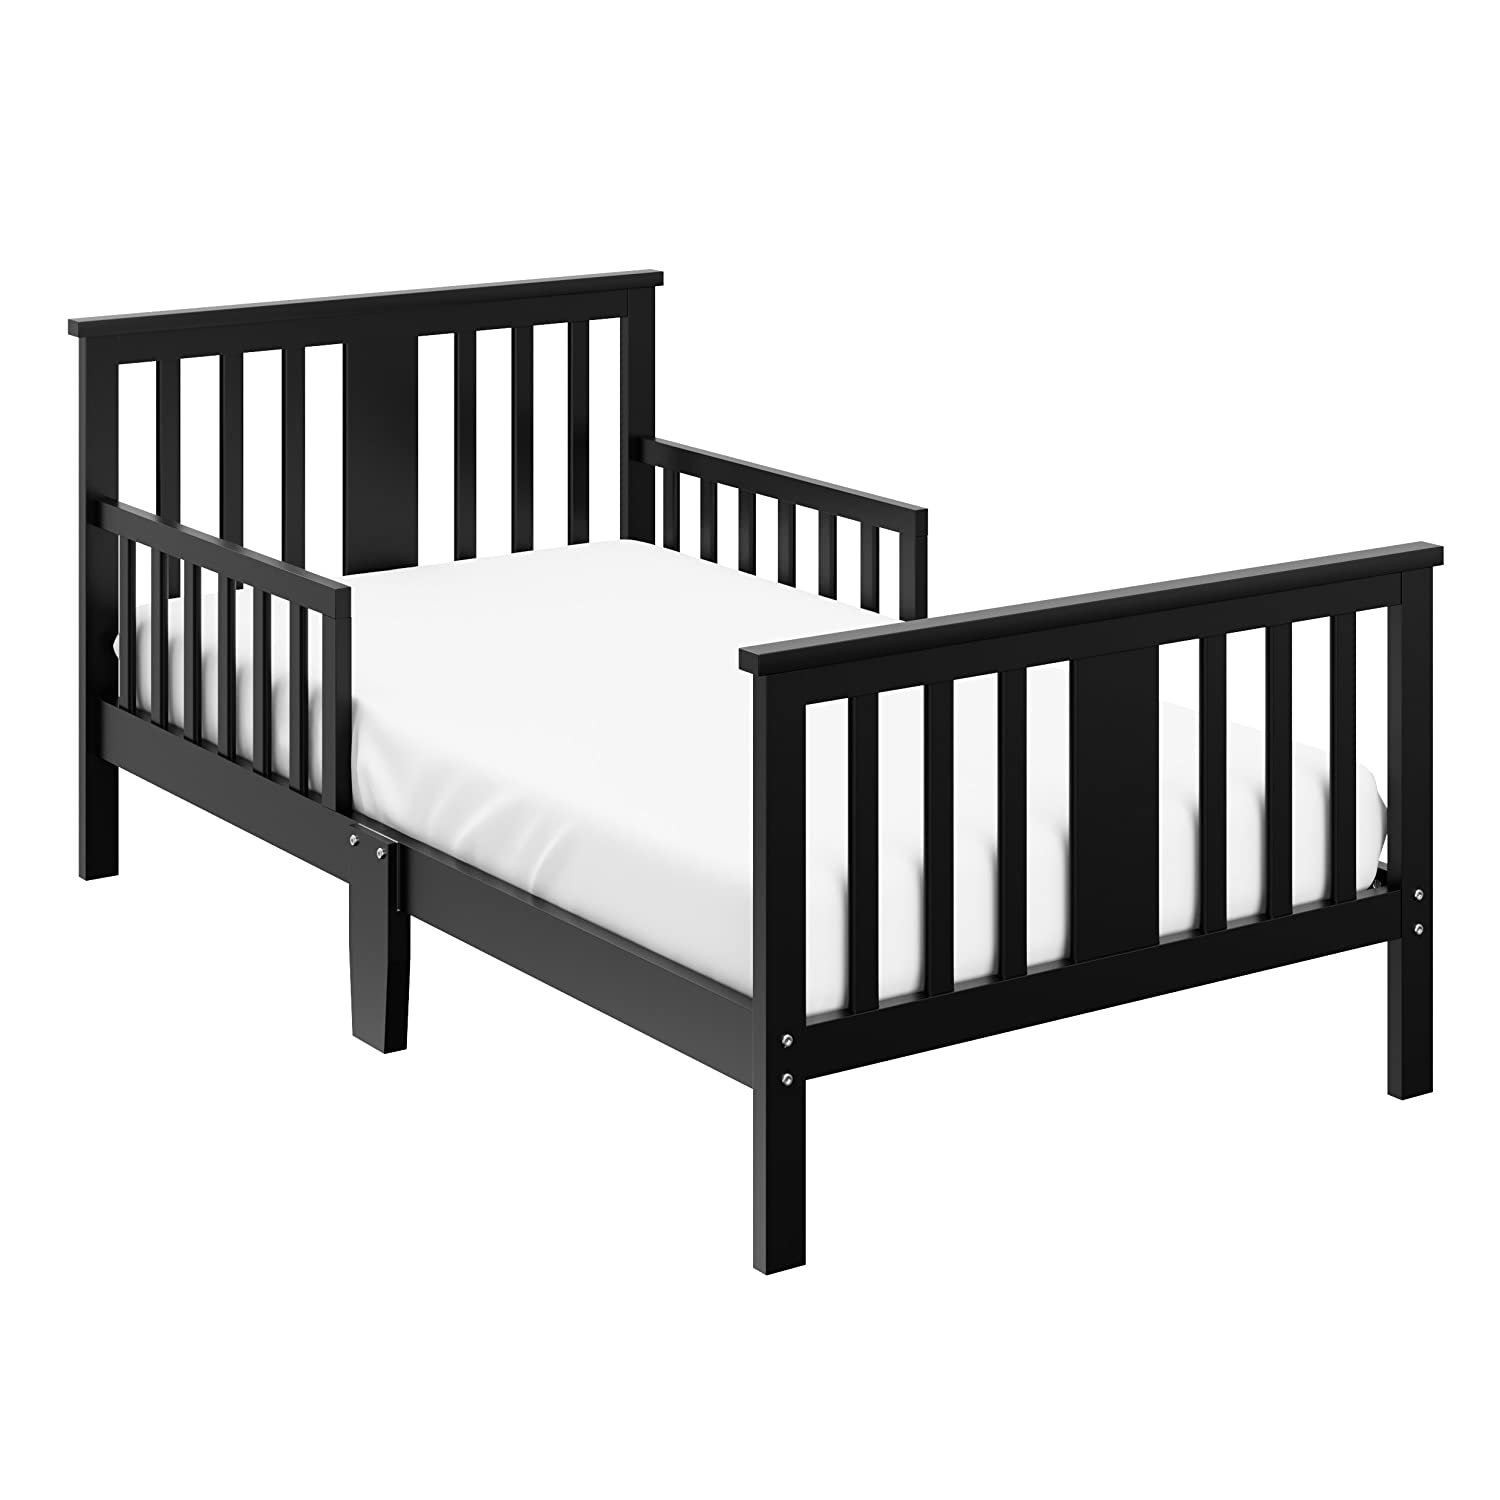 Storkcraft Mission Ridge Toddler Bed Black Fits Standard-Size Toddler Mattress, Guardrails on Both Sides for Protection, Meets or Exceeds all Federal Safety Standards, Pine & Composite Construction 05250-10B